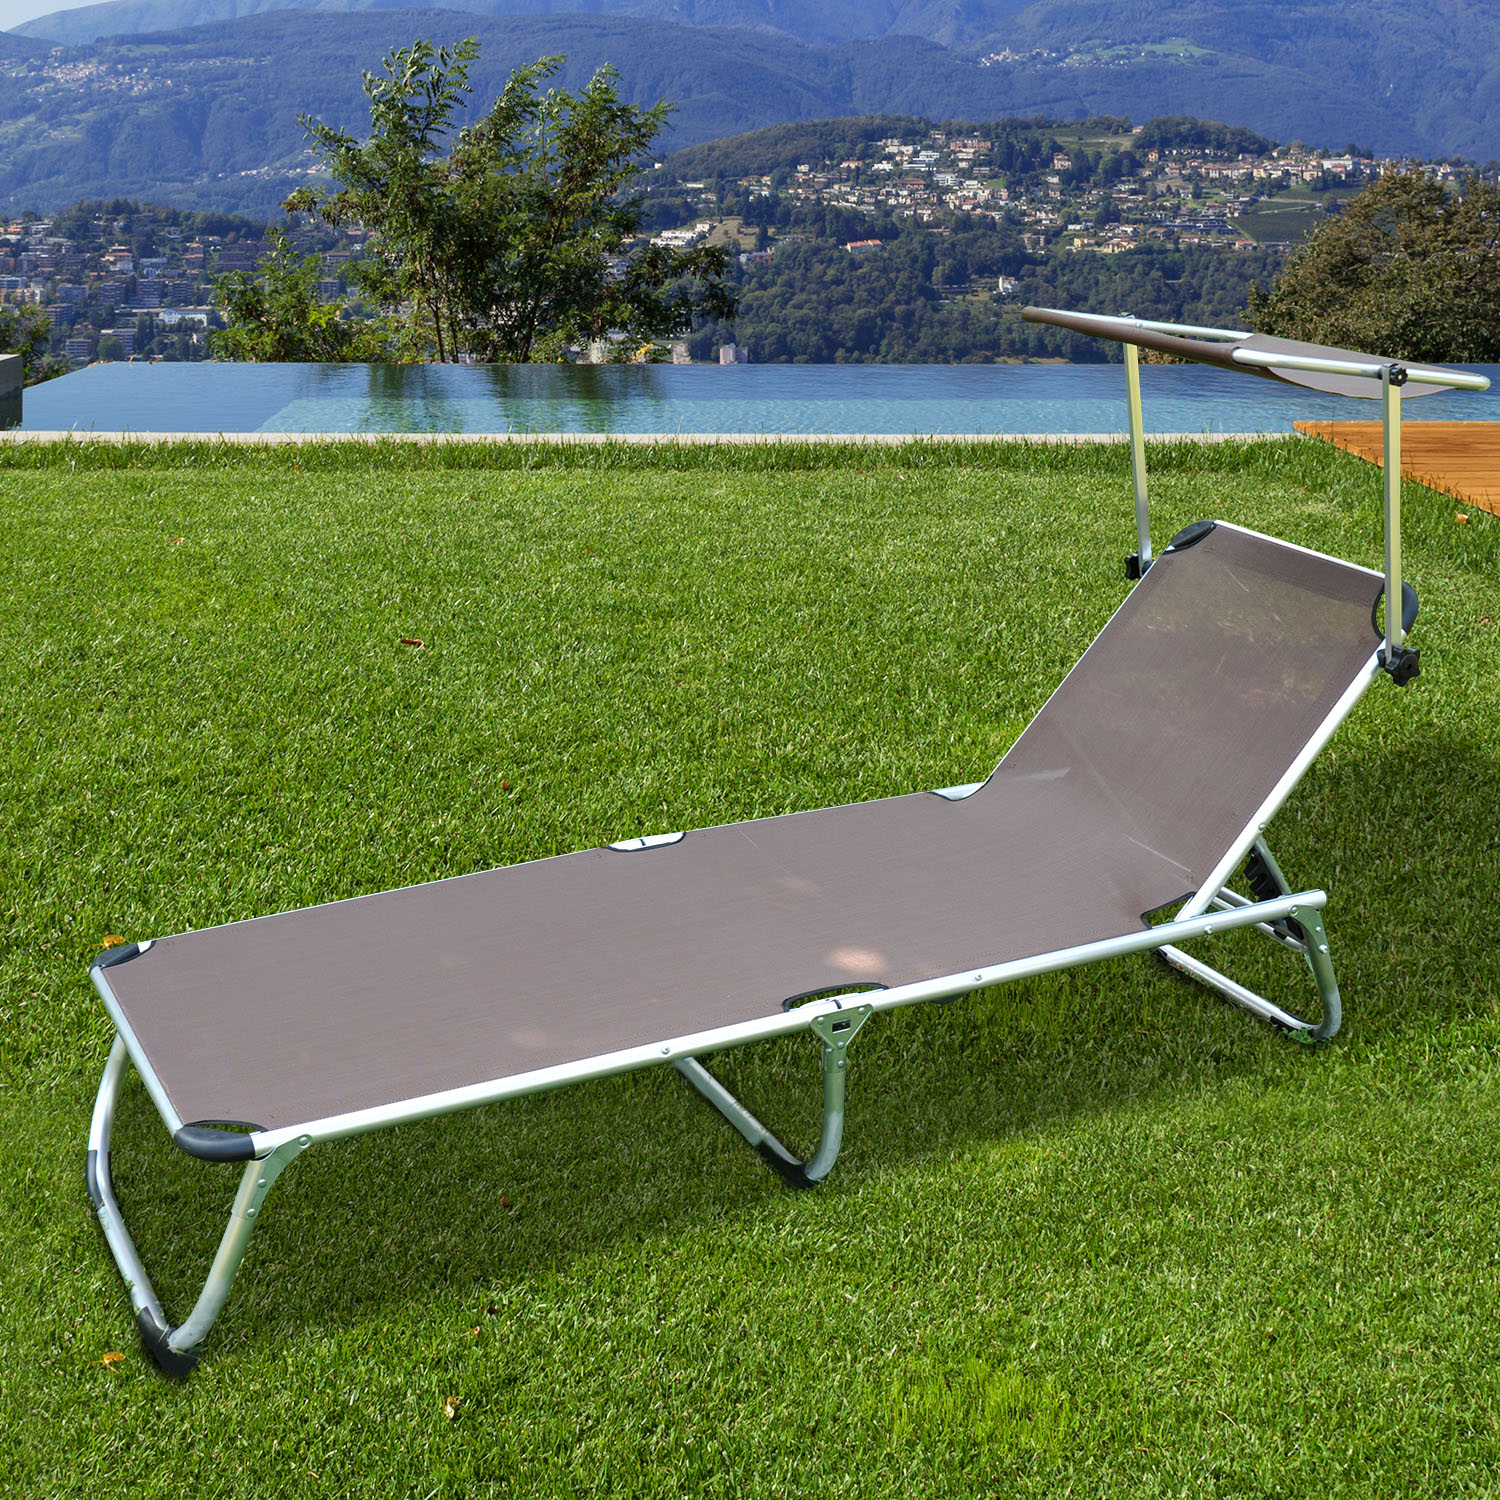 chaise longue transat bain de soleil pliant avec ombrelle aluminium chocolat 39 ebay. Black Bedroom Furniture Sets. Home Design Ideas